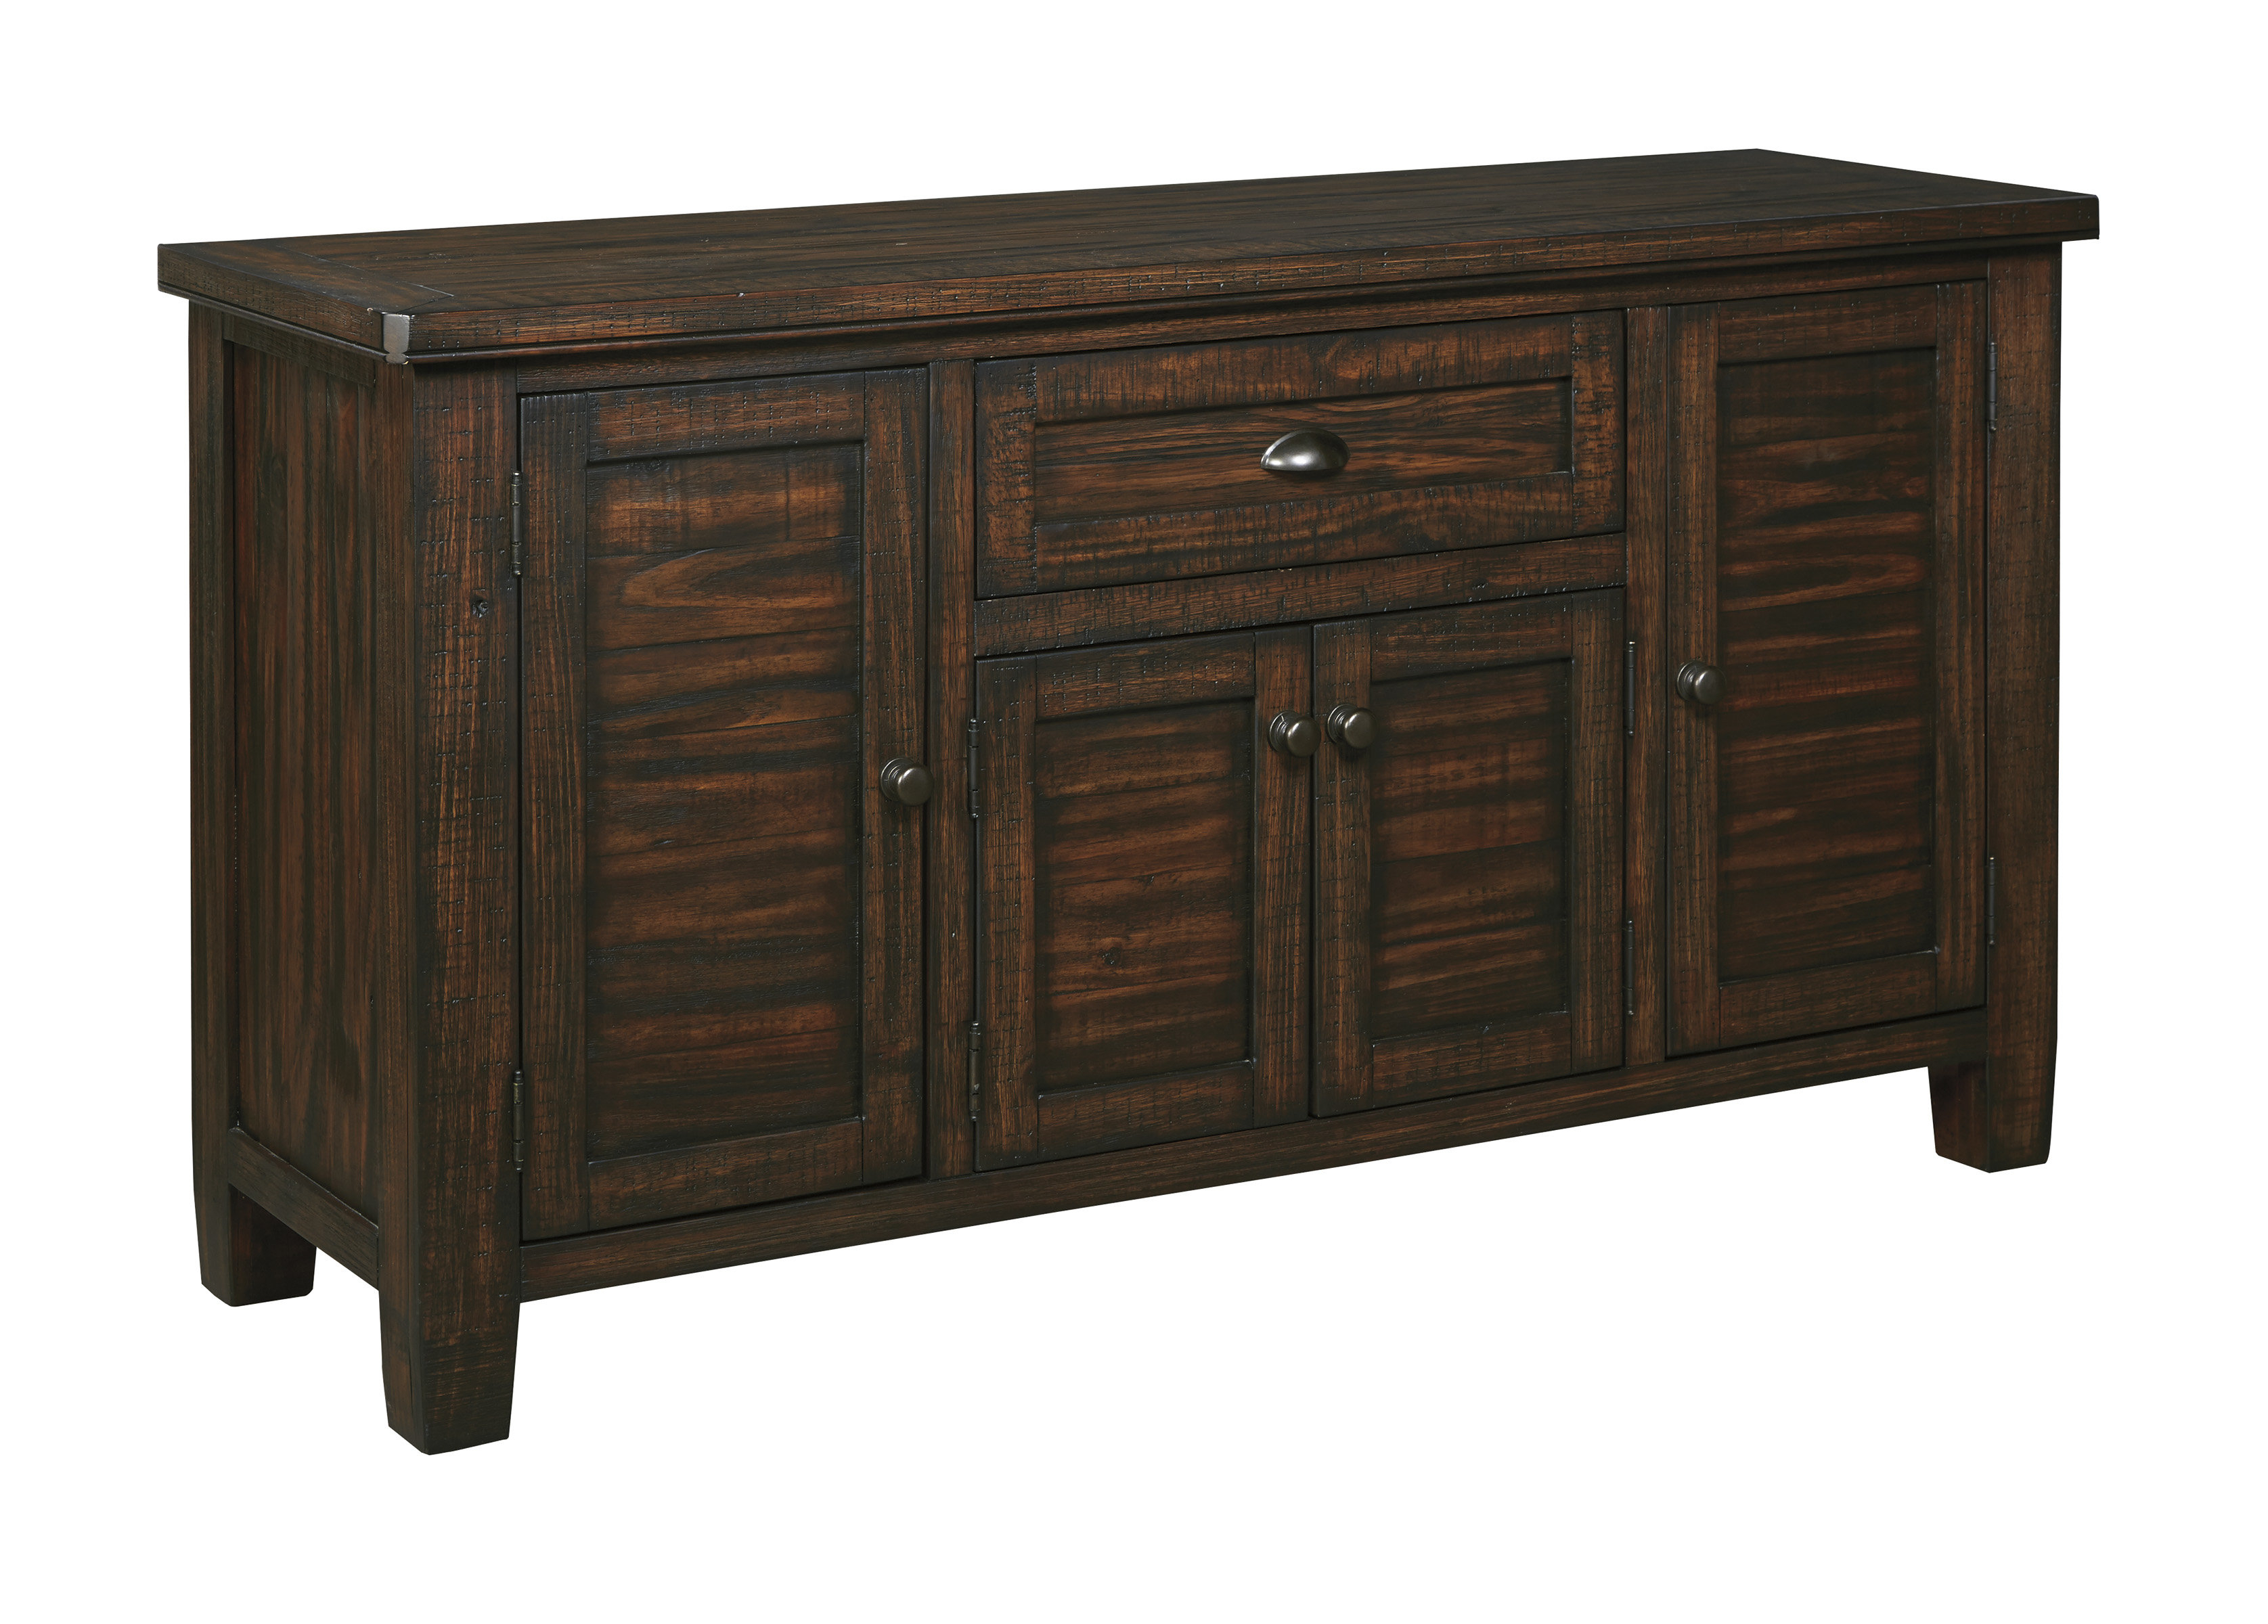 Farmhouse & Rustic Medium Brown Wood Sideboards & Buffets Throughout Most Popular Alegre Sideboards (#8 of 20)